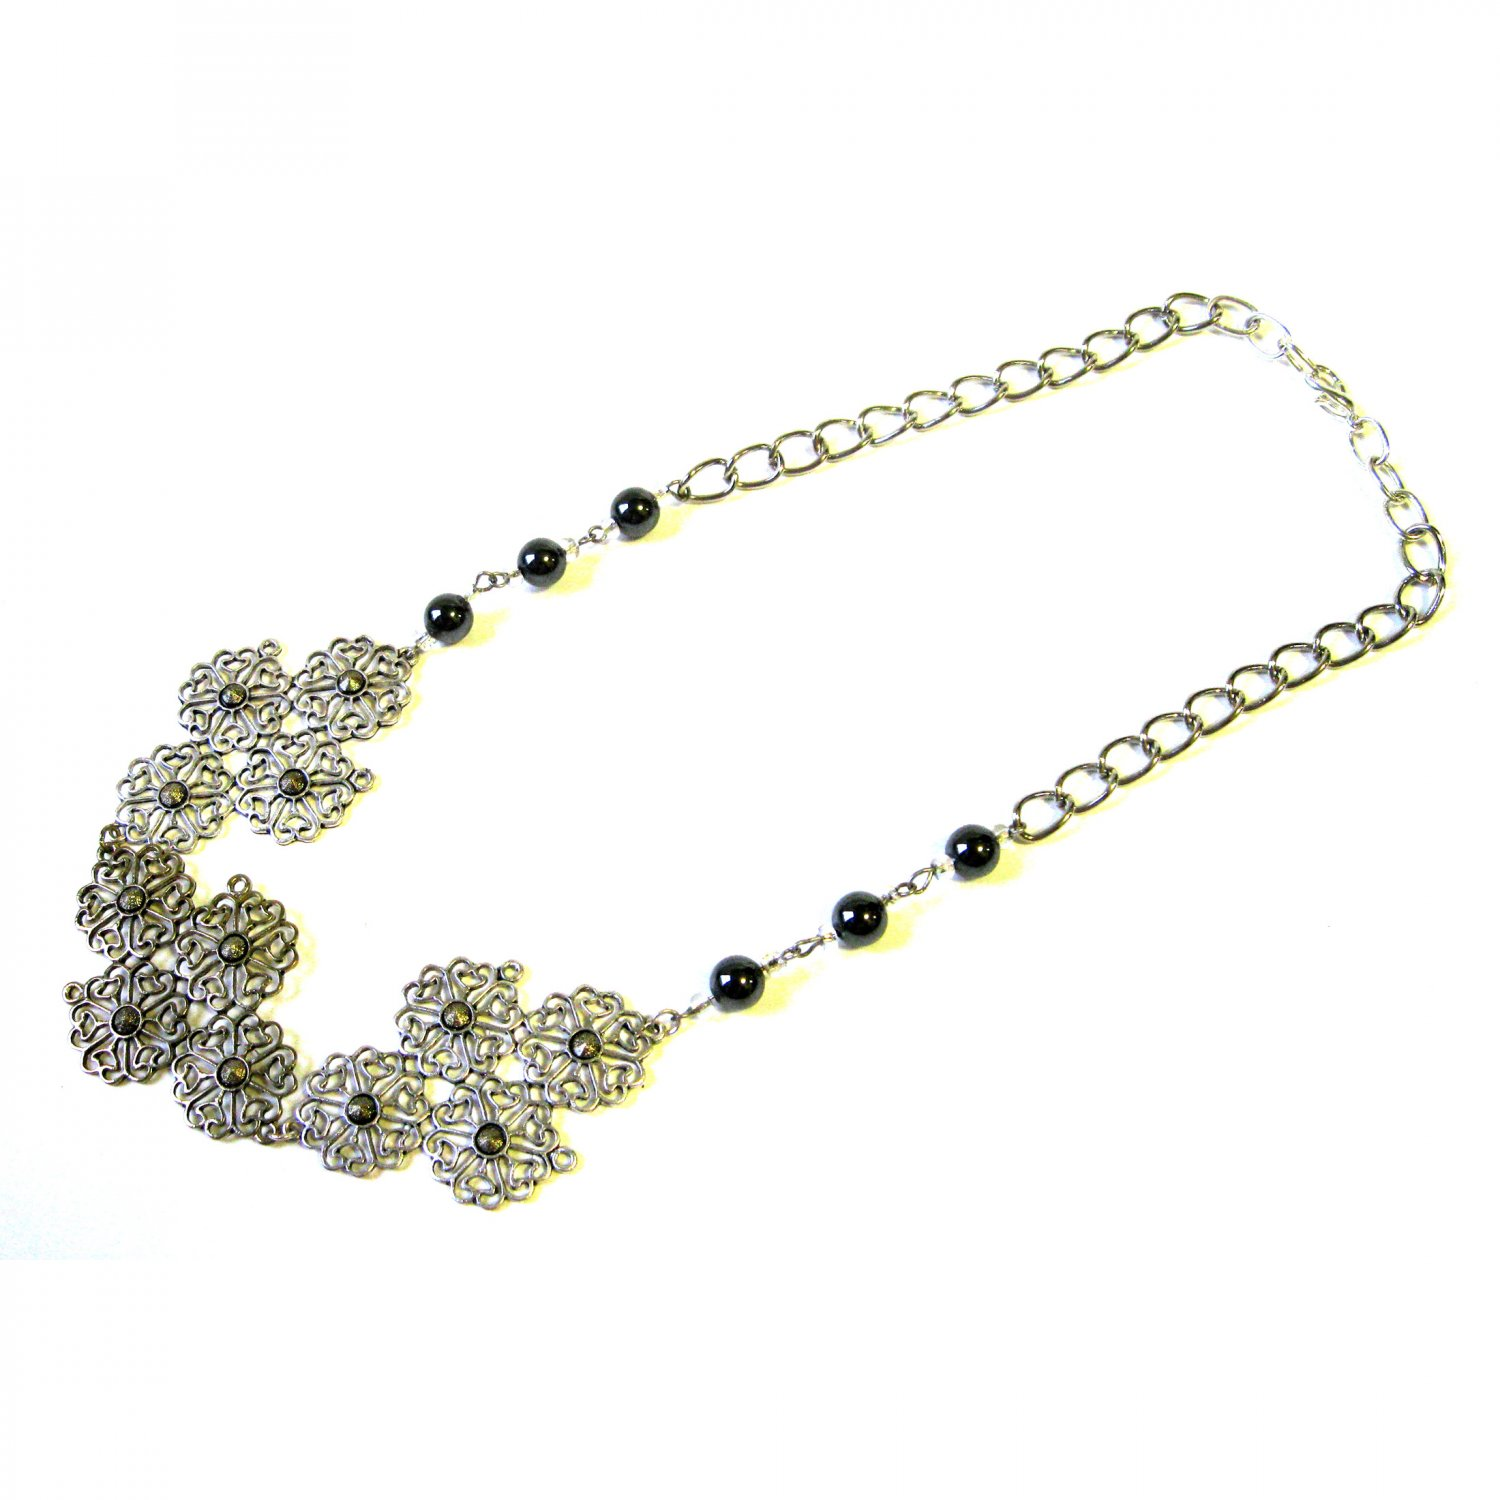 Lacy silver gold trendy statement ooak fashion necklace with hematite